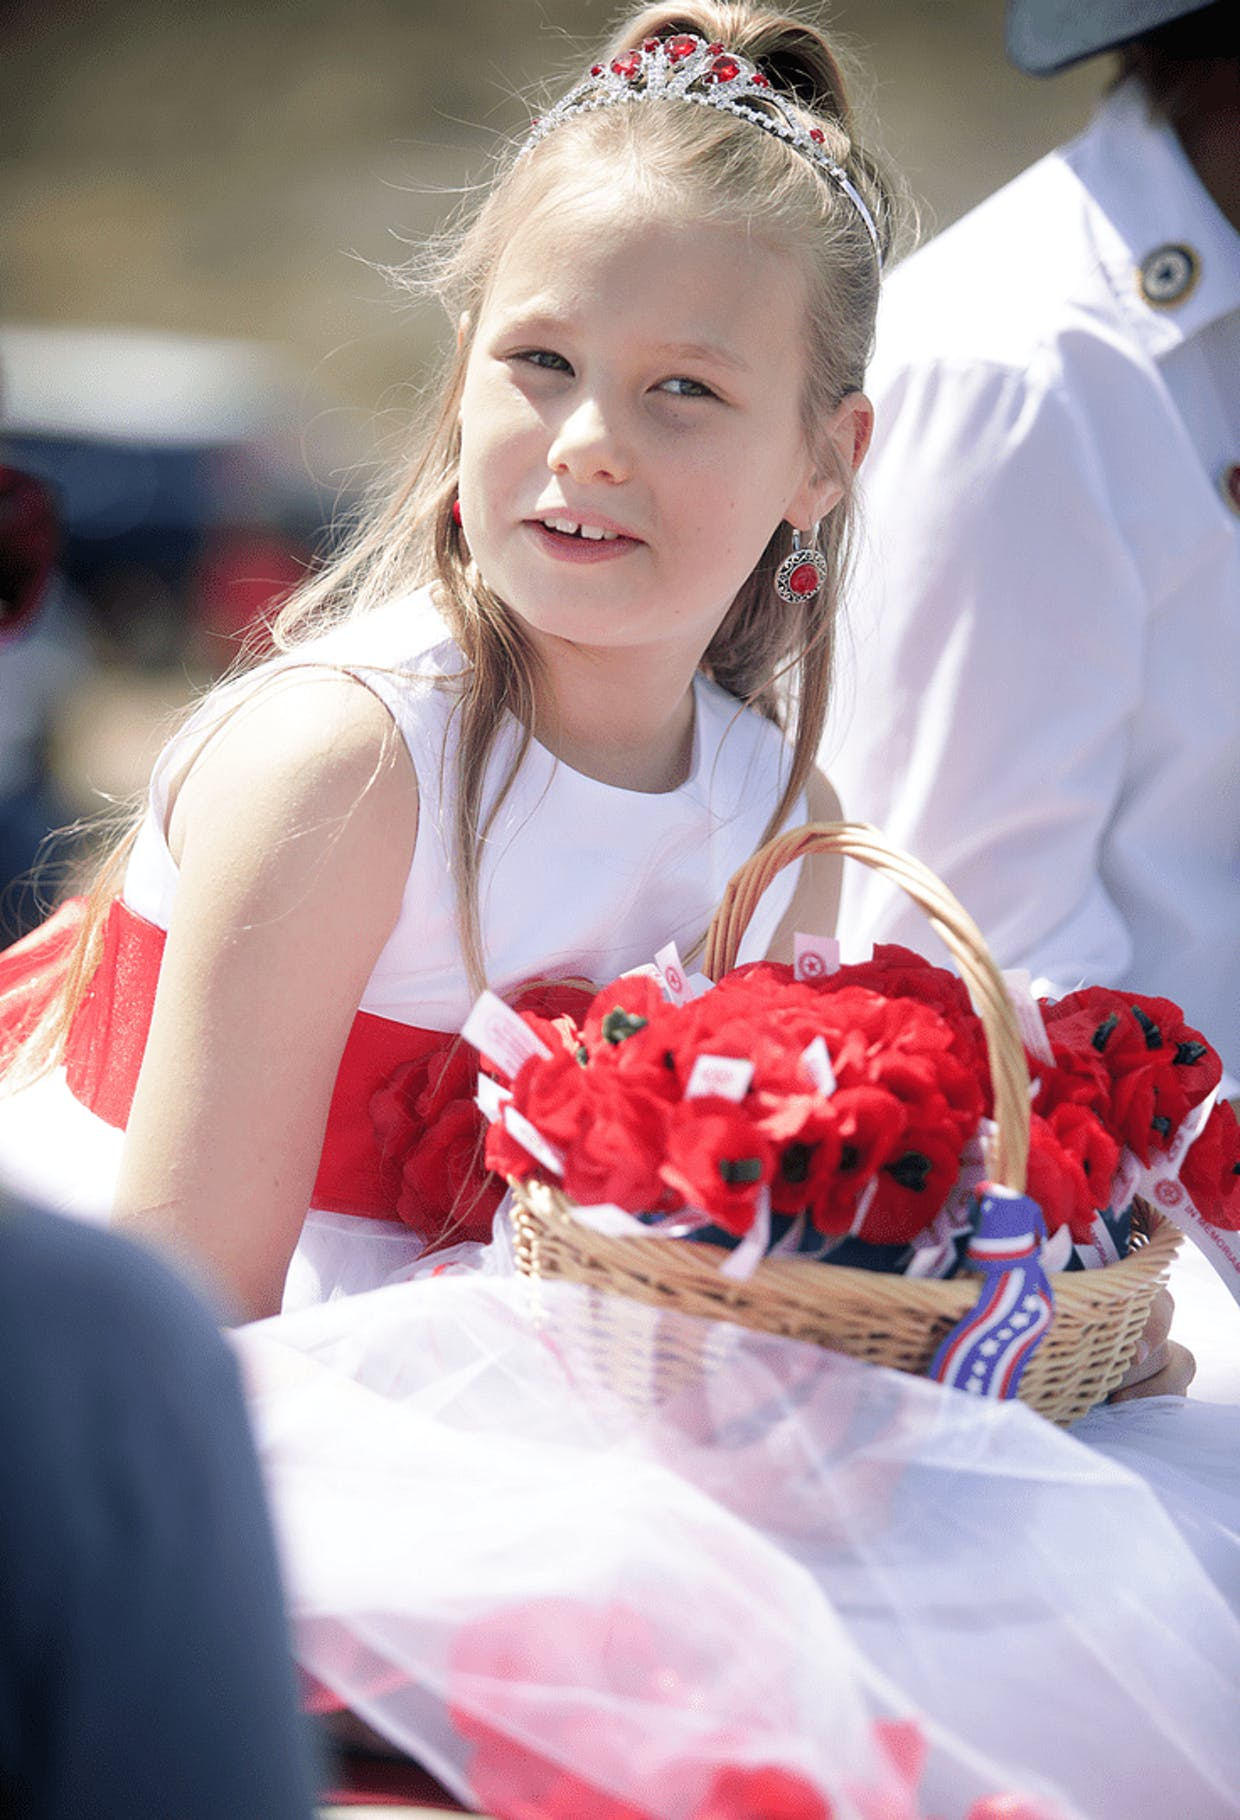 Tombstone Rose Parade Poppy Princess Piper Leavere, 8, prepares to join in on Saturday's annual event.